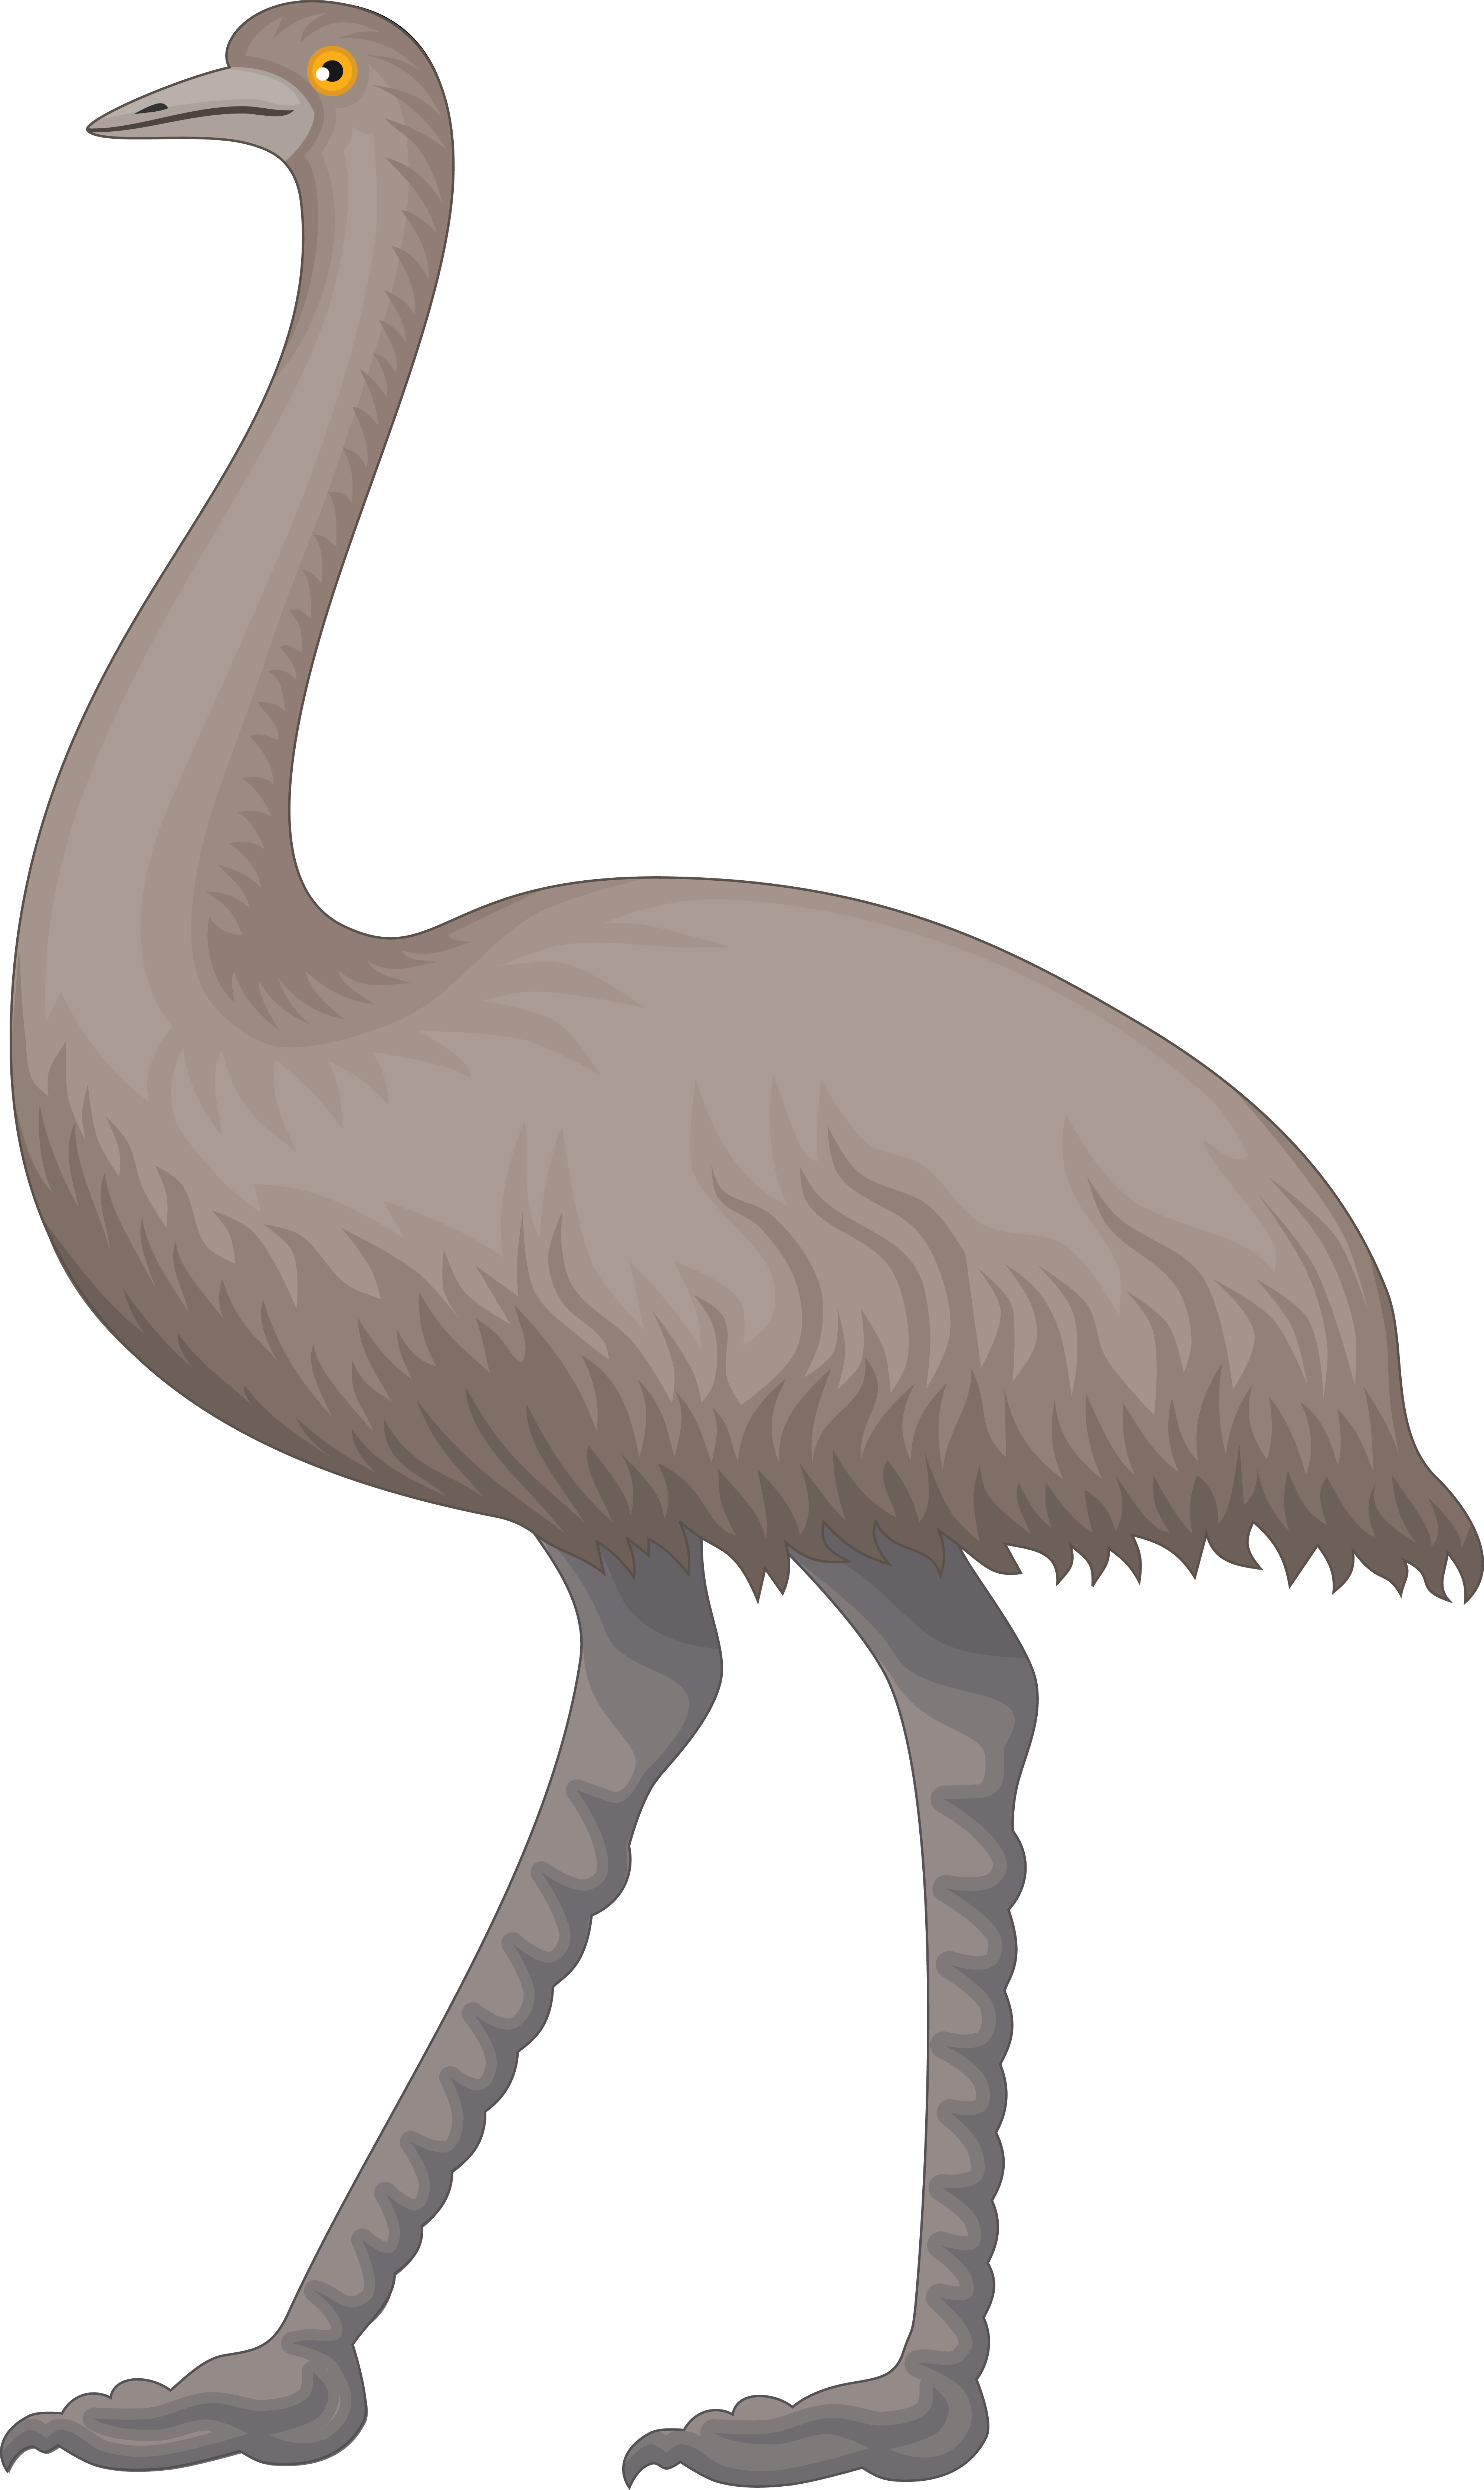 Free Clipart Of An Emu.